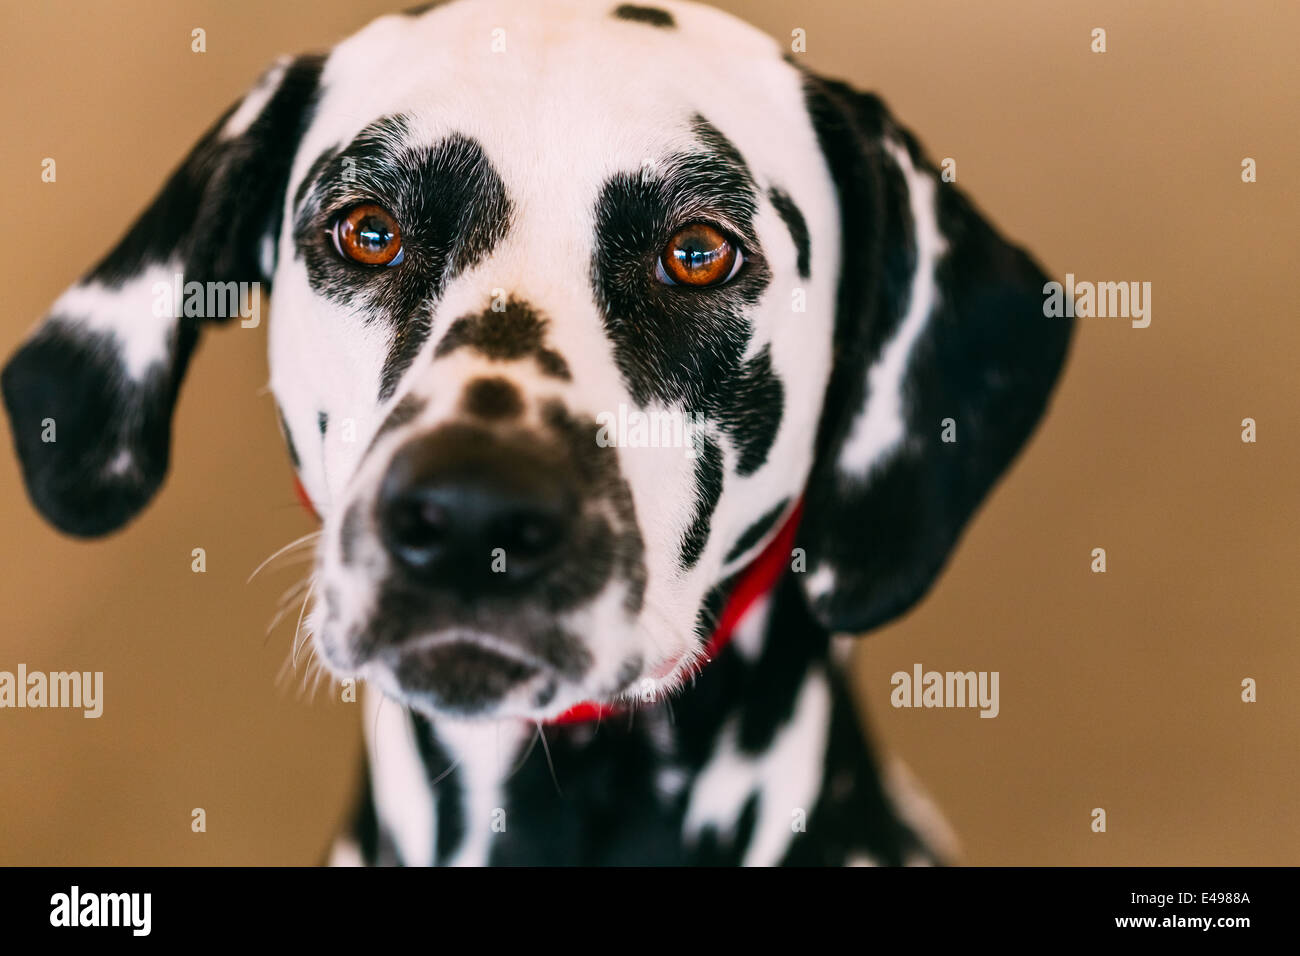 Close up of the face of a dalmatian dog. Beautiful Dalmatian dog head portrait with cute expression in the face - Stock Image